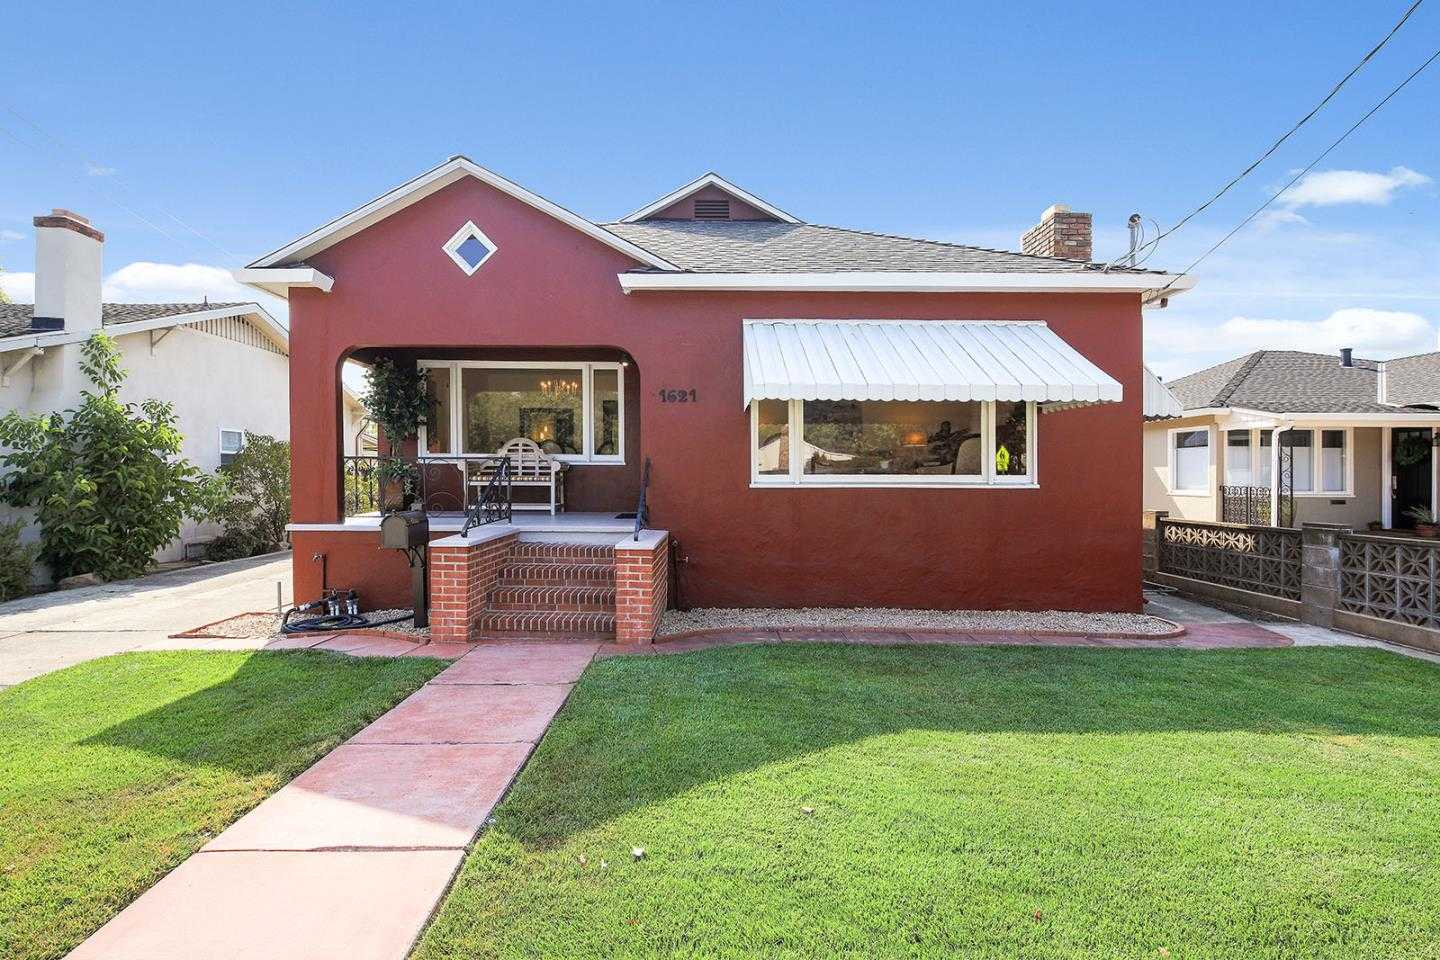 $1,099,000 - 3Br/2Ba -  for Sale in Redwood City